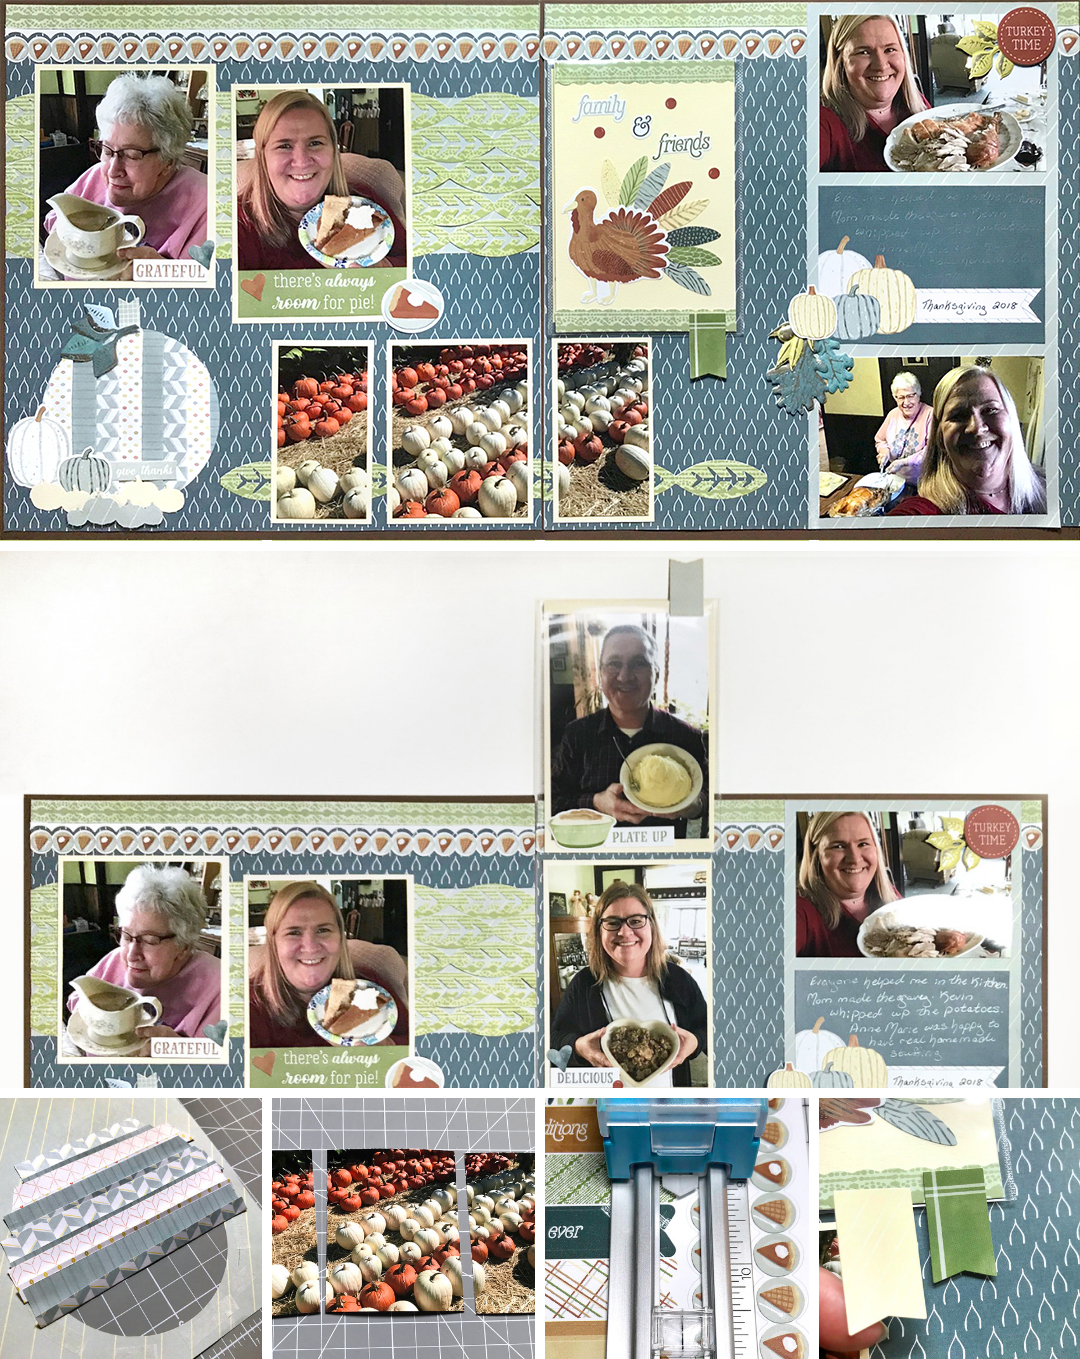 Virtual-Crop-ThankFULL-Theme-Pack-Layout-Final-Creative-Memories